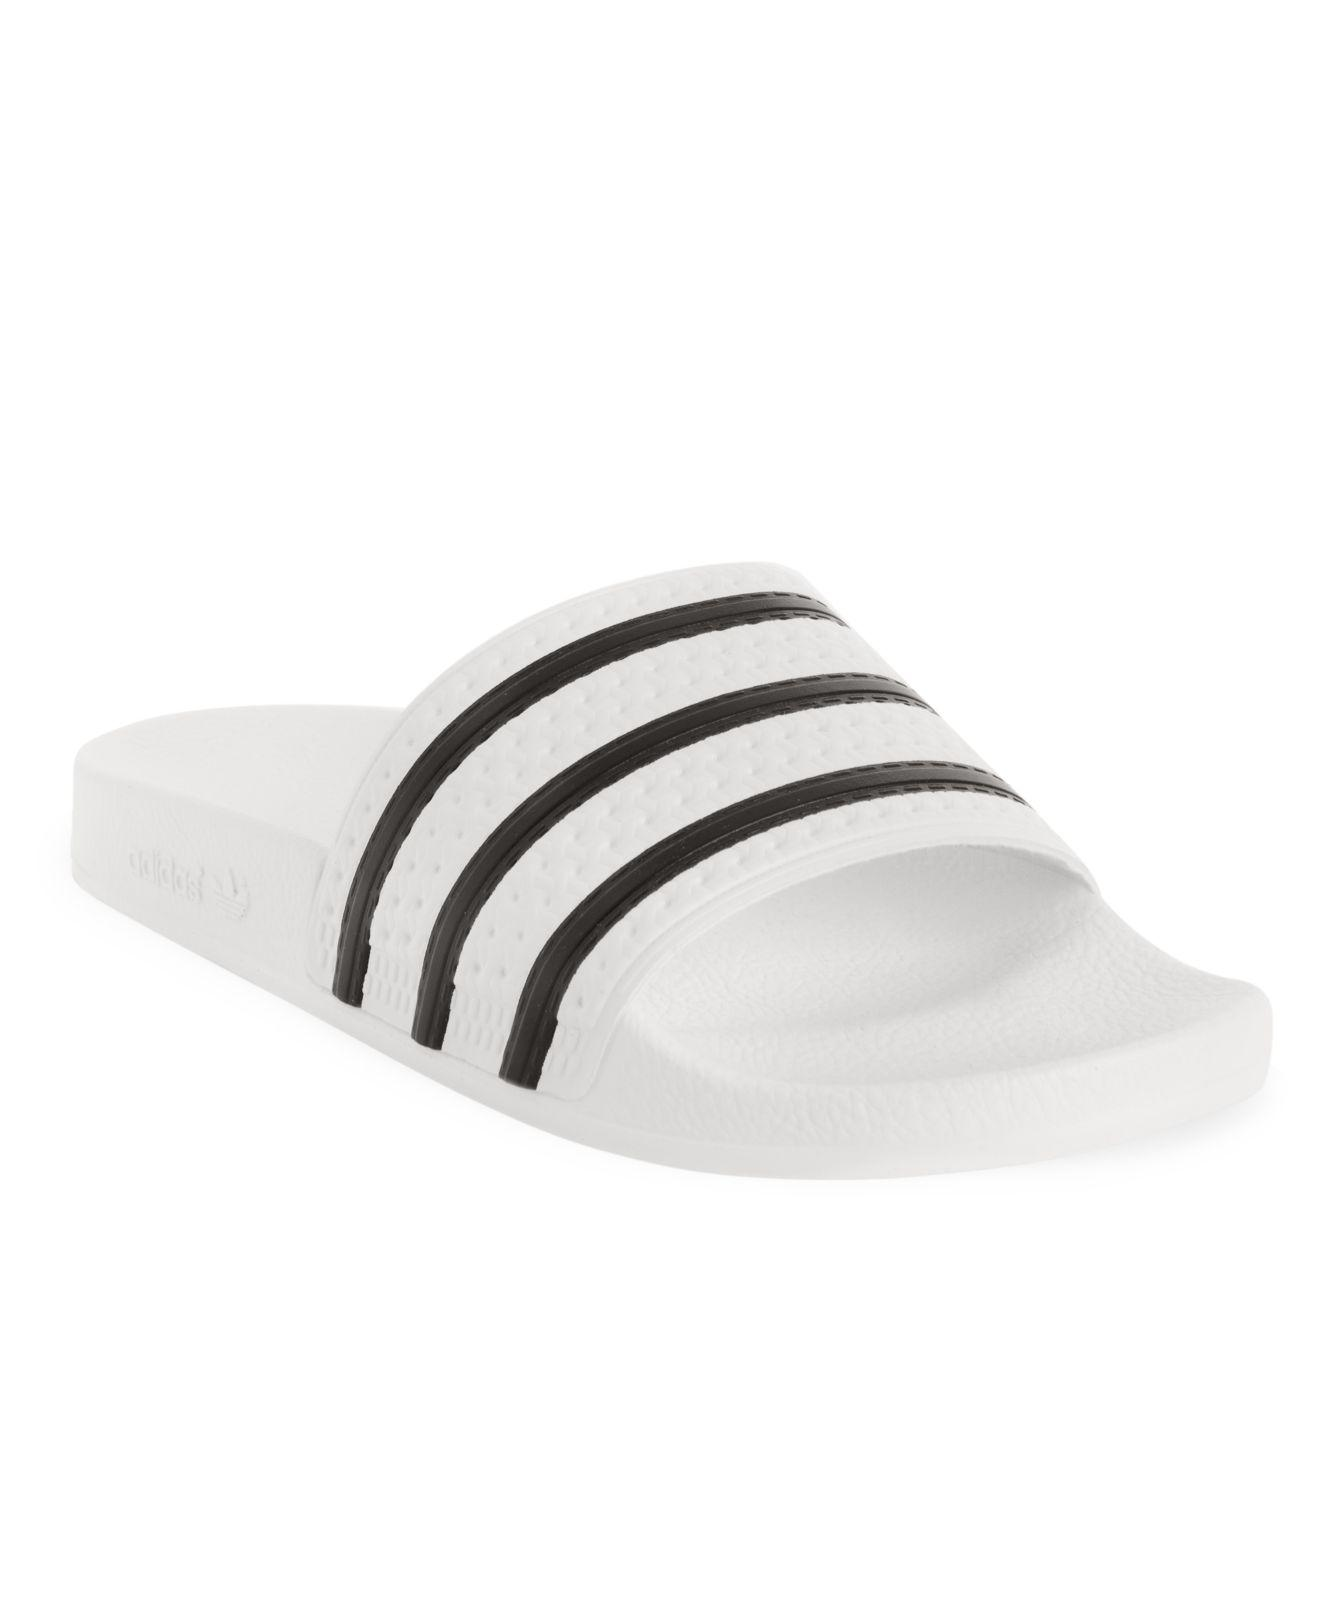 23405a50452d89 Lyst - Adidas Adilette Slide Sandals From Finish Line in White for Men